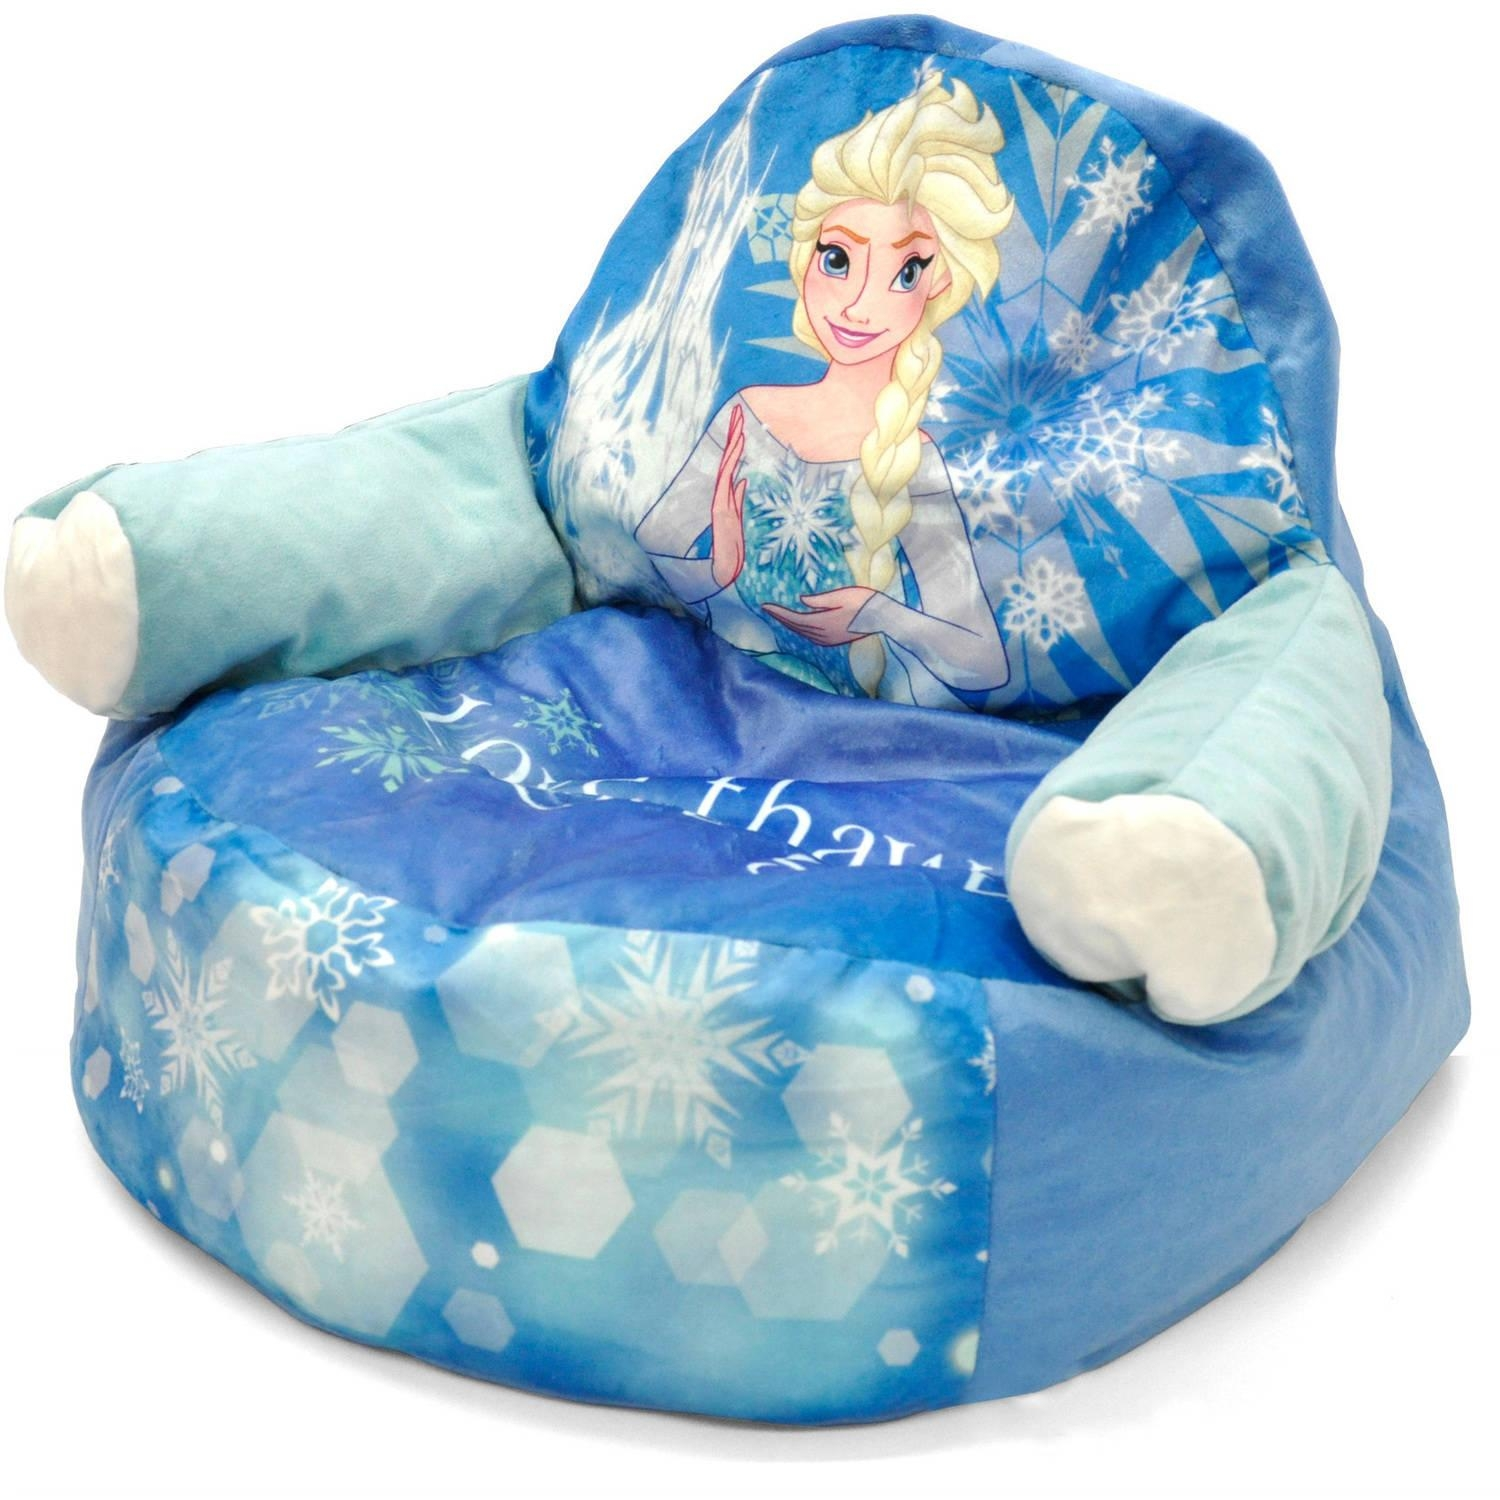 Disney Frozen Sofa Bean Bag Chair With Piping – Walmart Inside Disney Sofa Chairs (View 17 of 20)